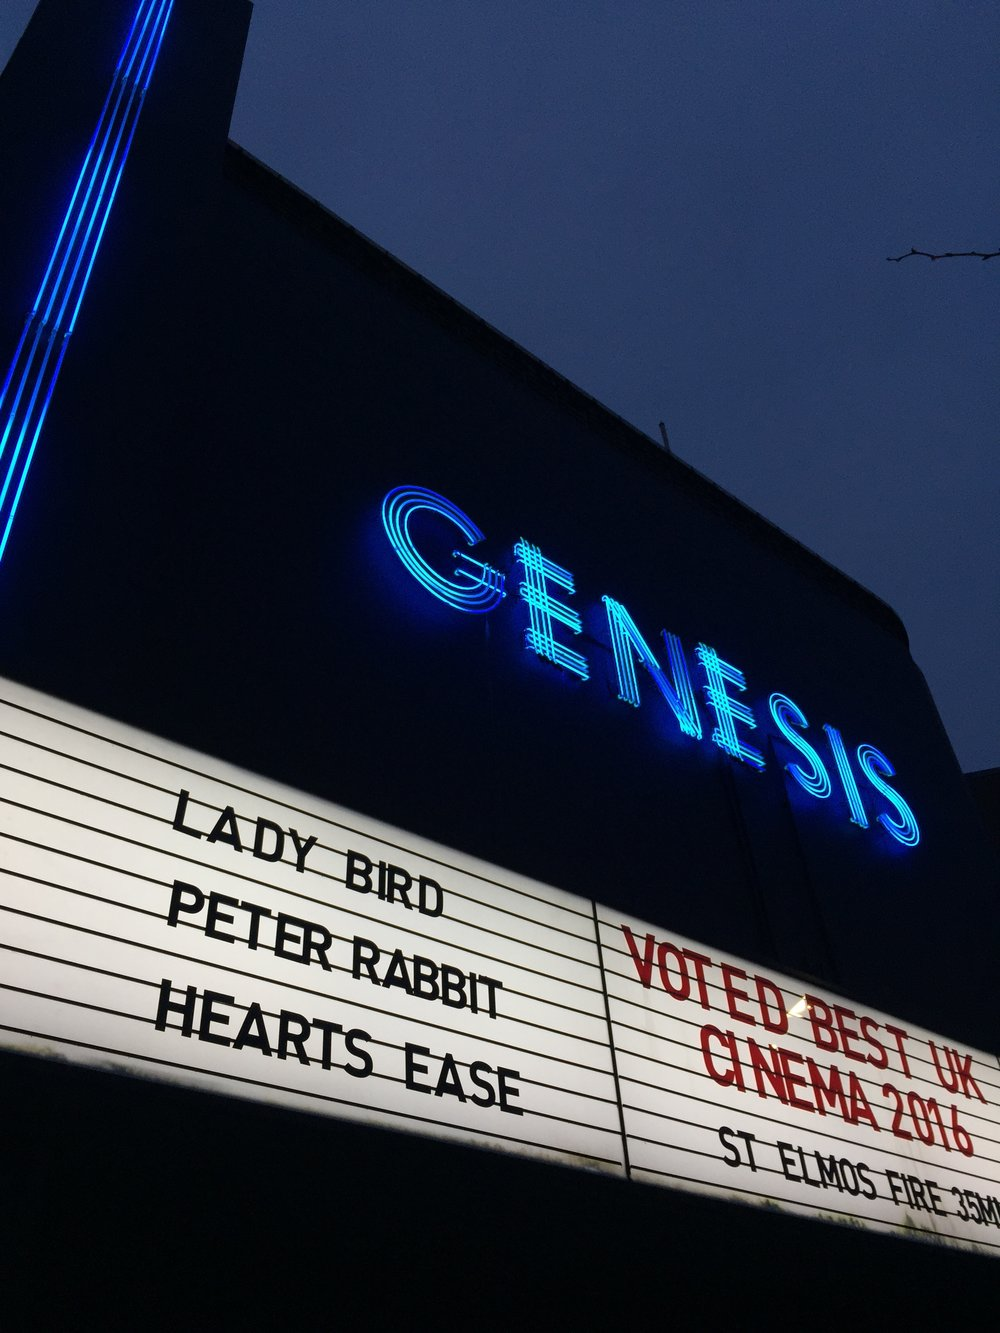 The cast and crew screening of Heart's Ease at Genesis Cinema on Thursday 22nd March 2018.